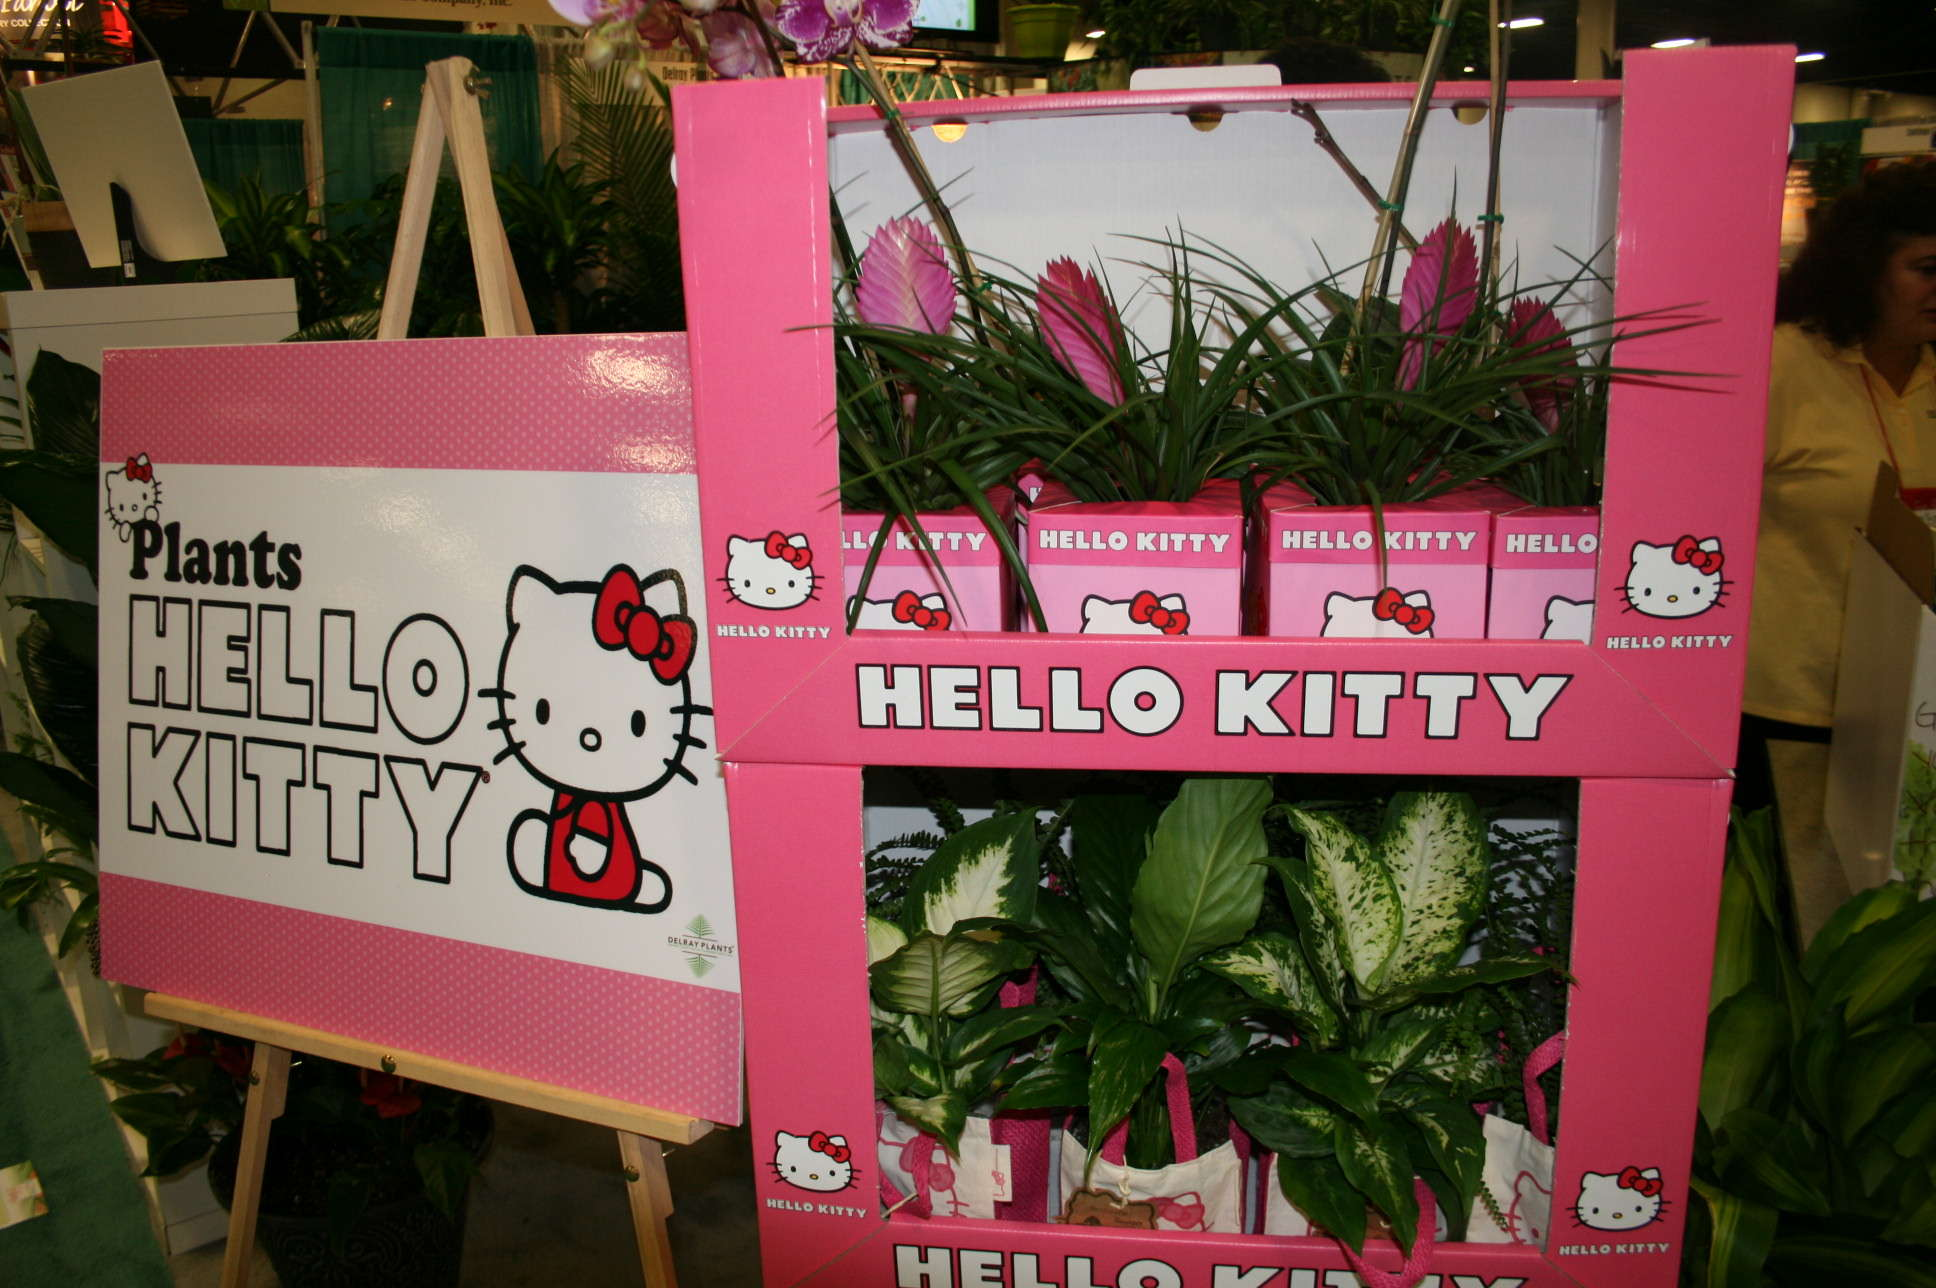 Hello Kitty Concept Hits The Right Demographic